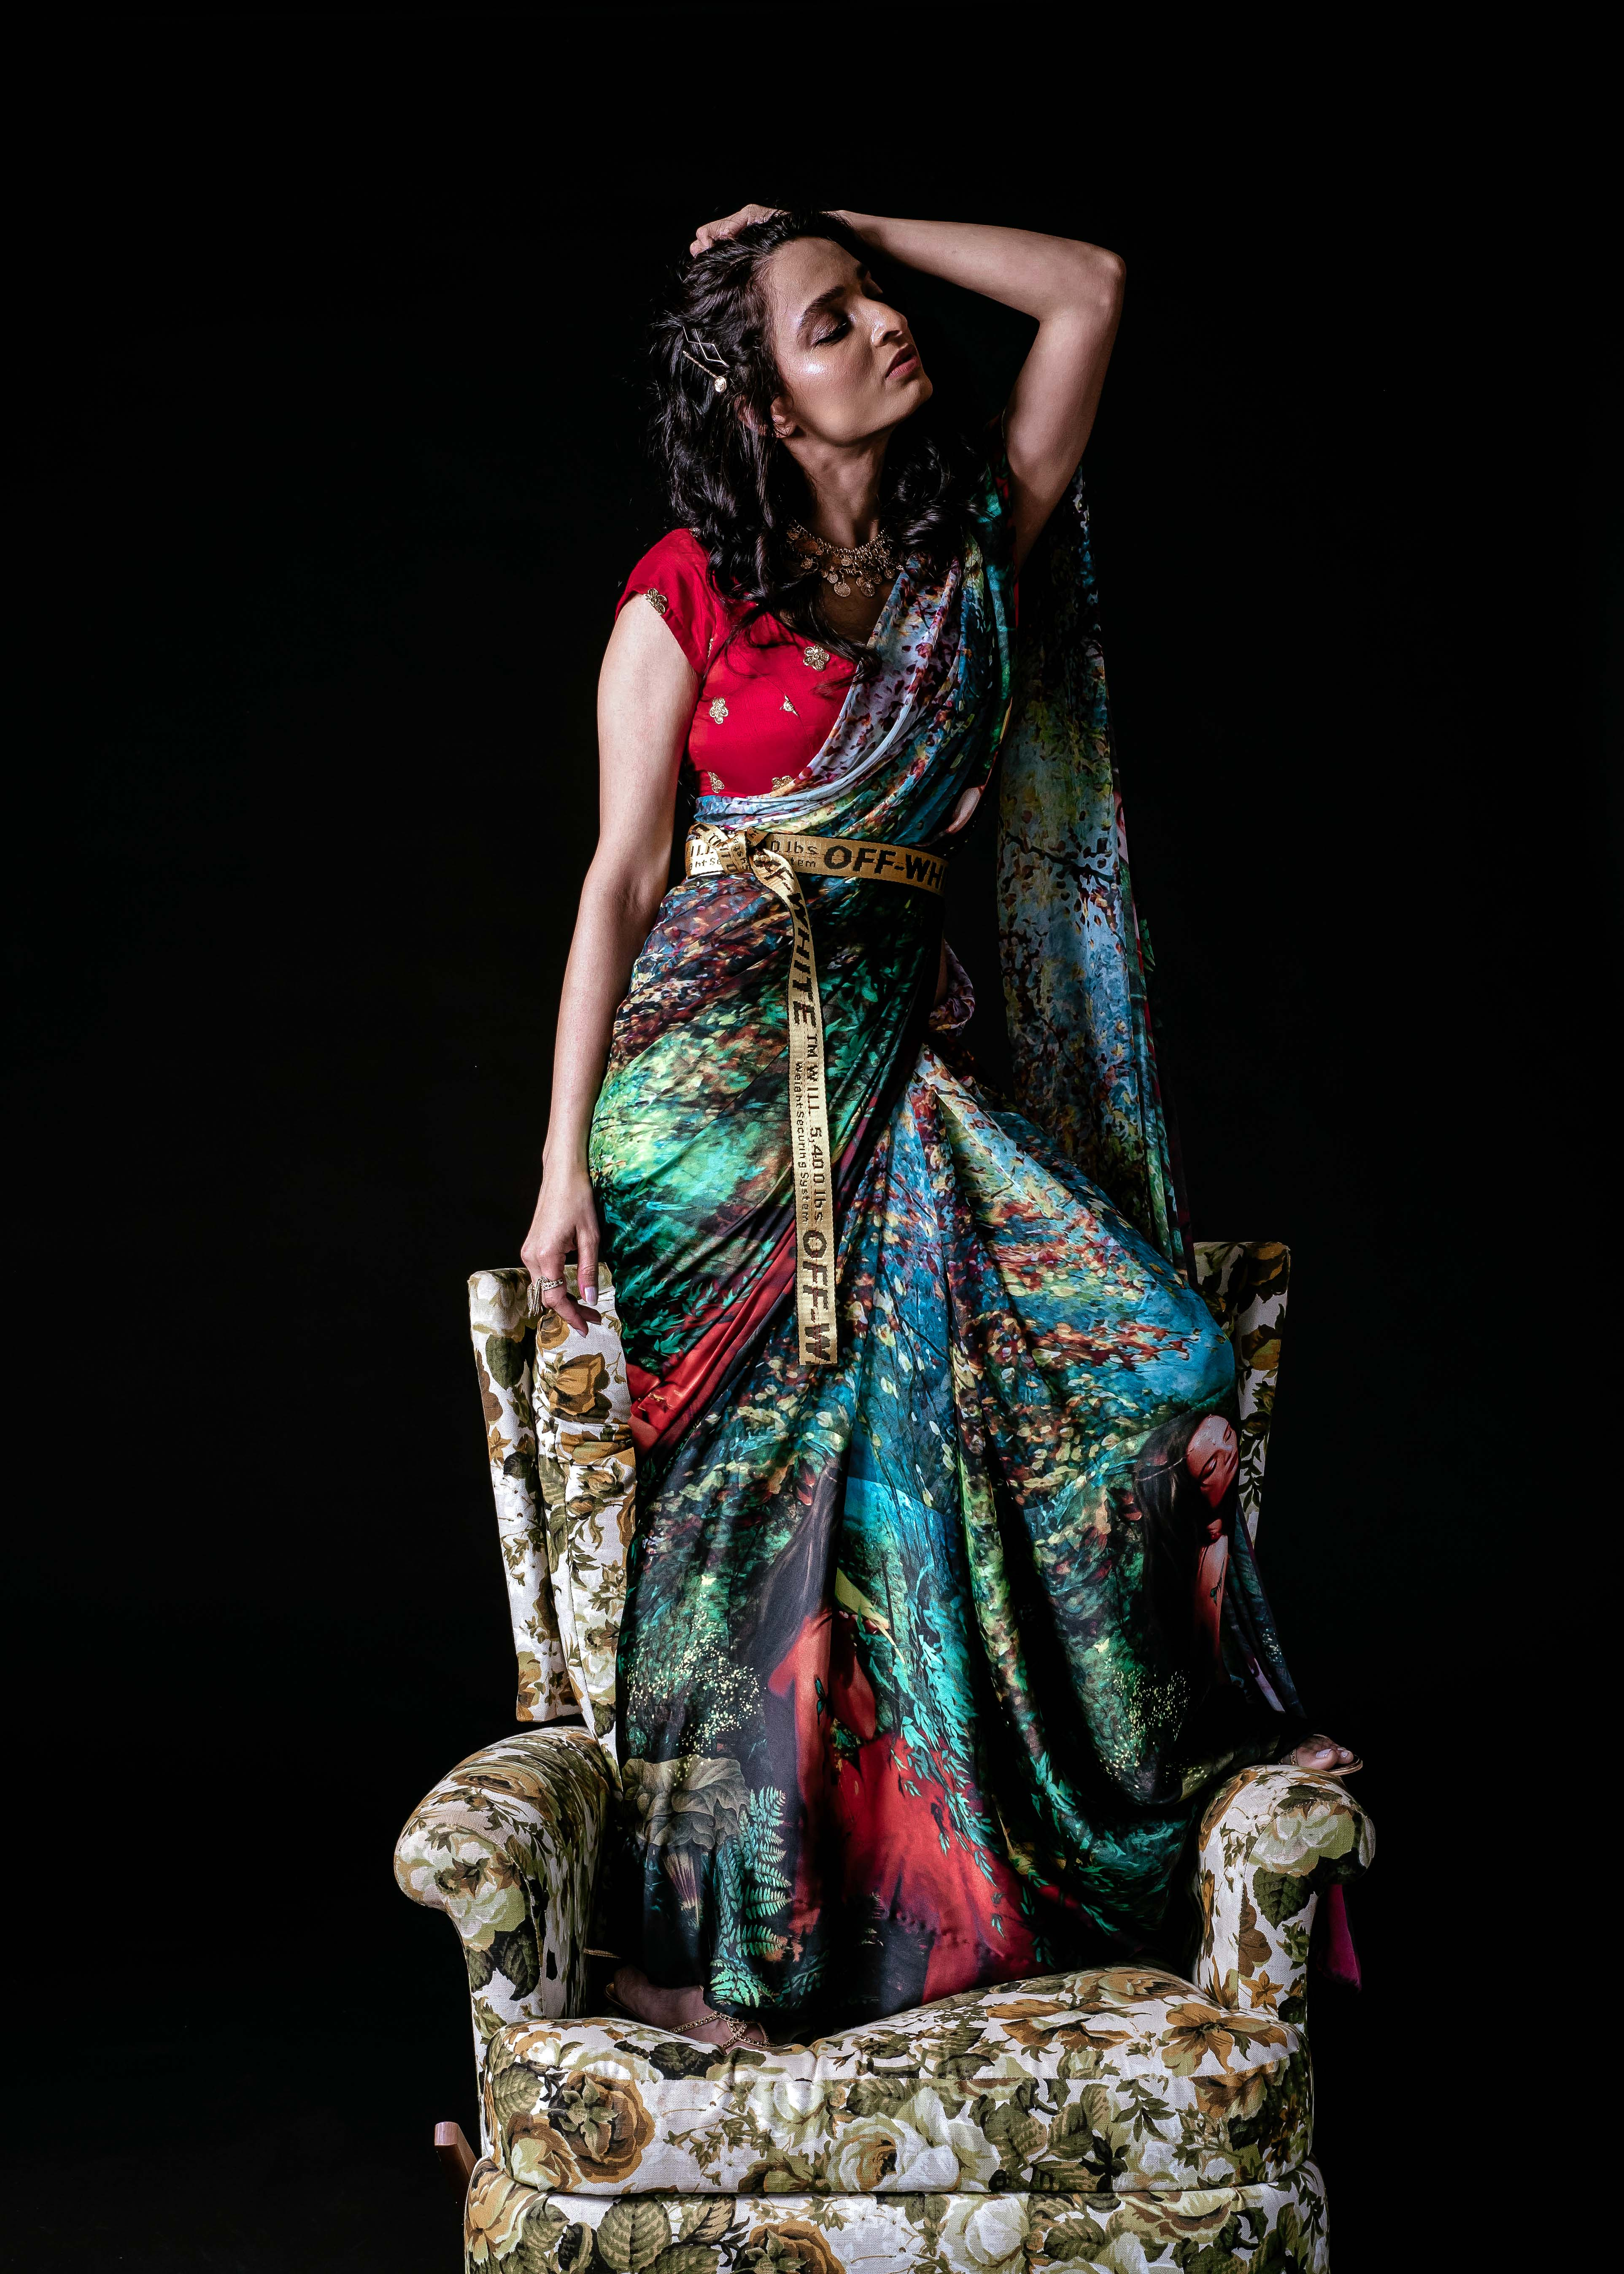 Green Saree sitting on floral chair